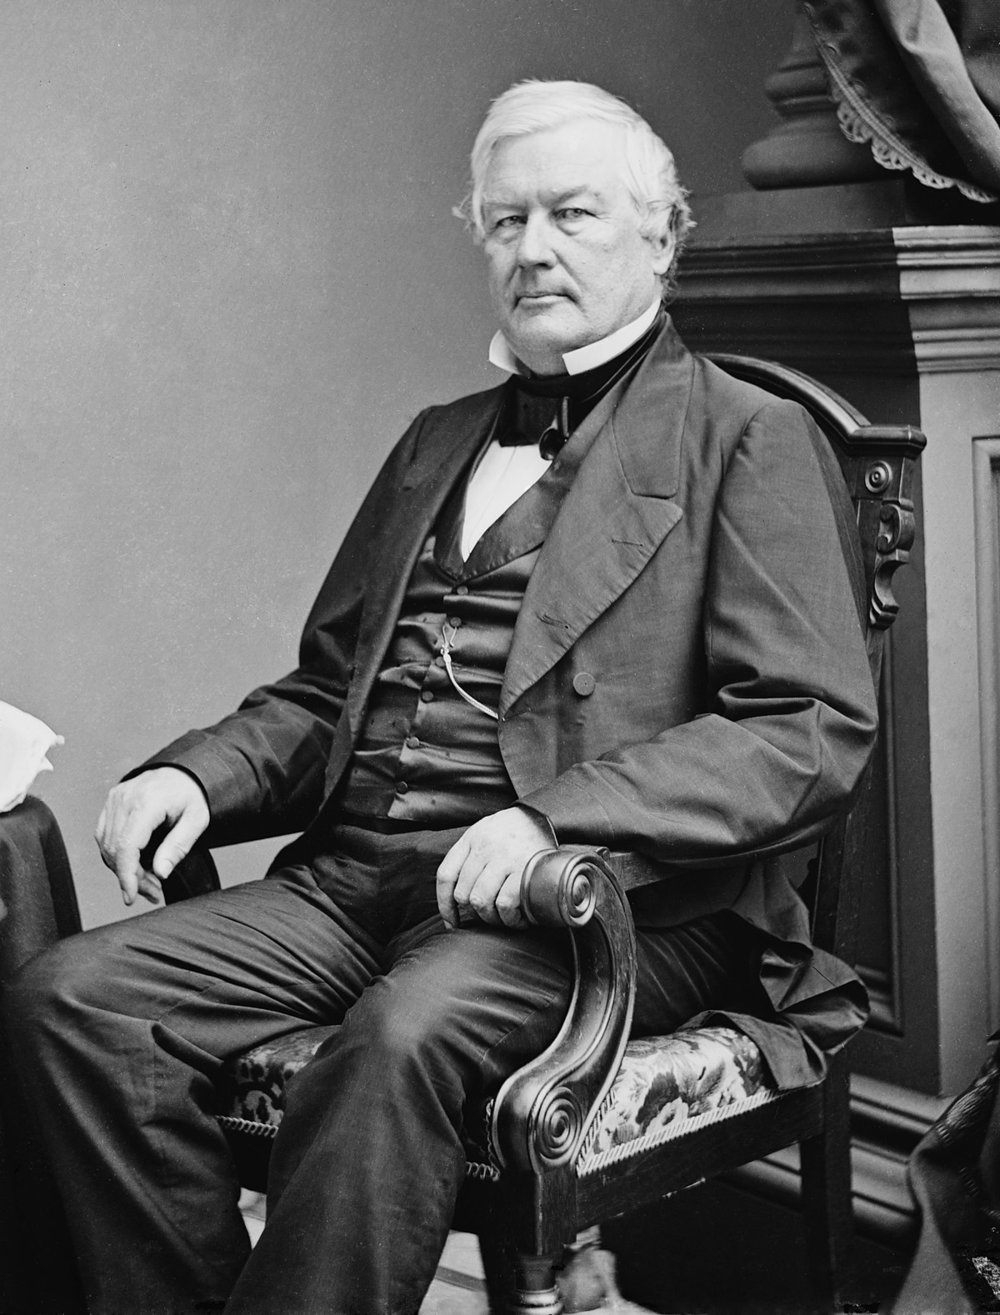 1200px-Millard_Fillmore-Edit1.jpg